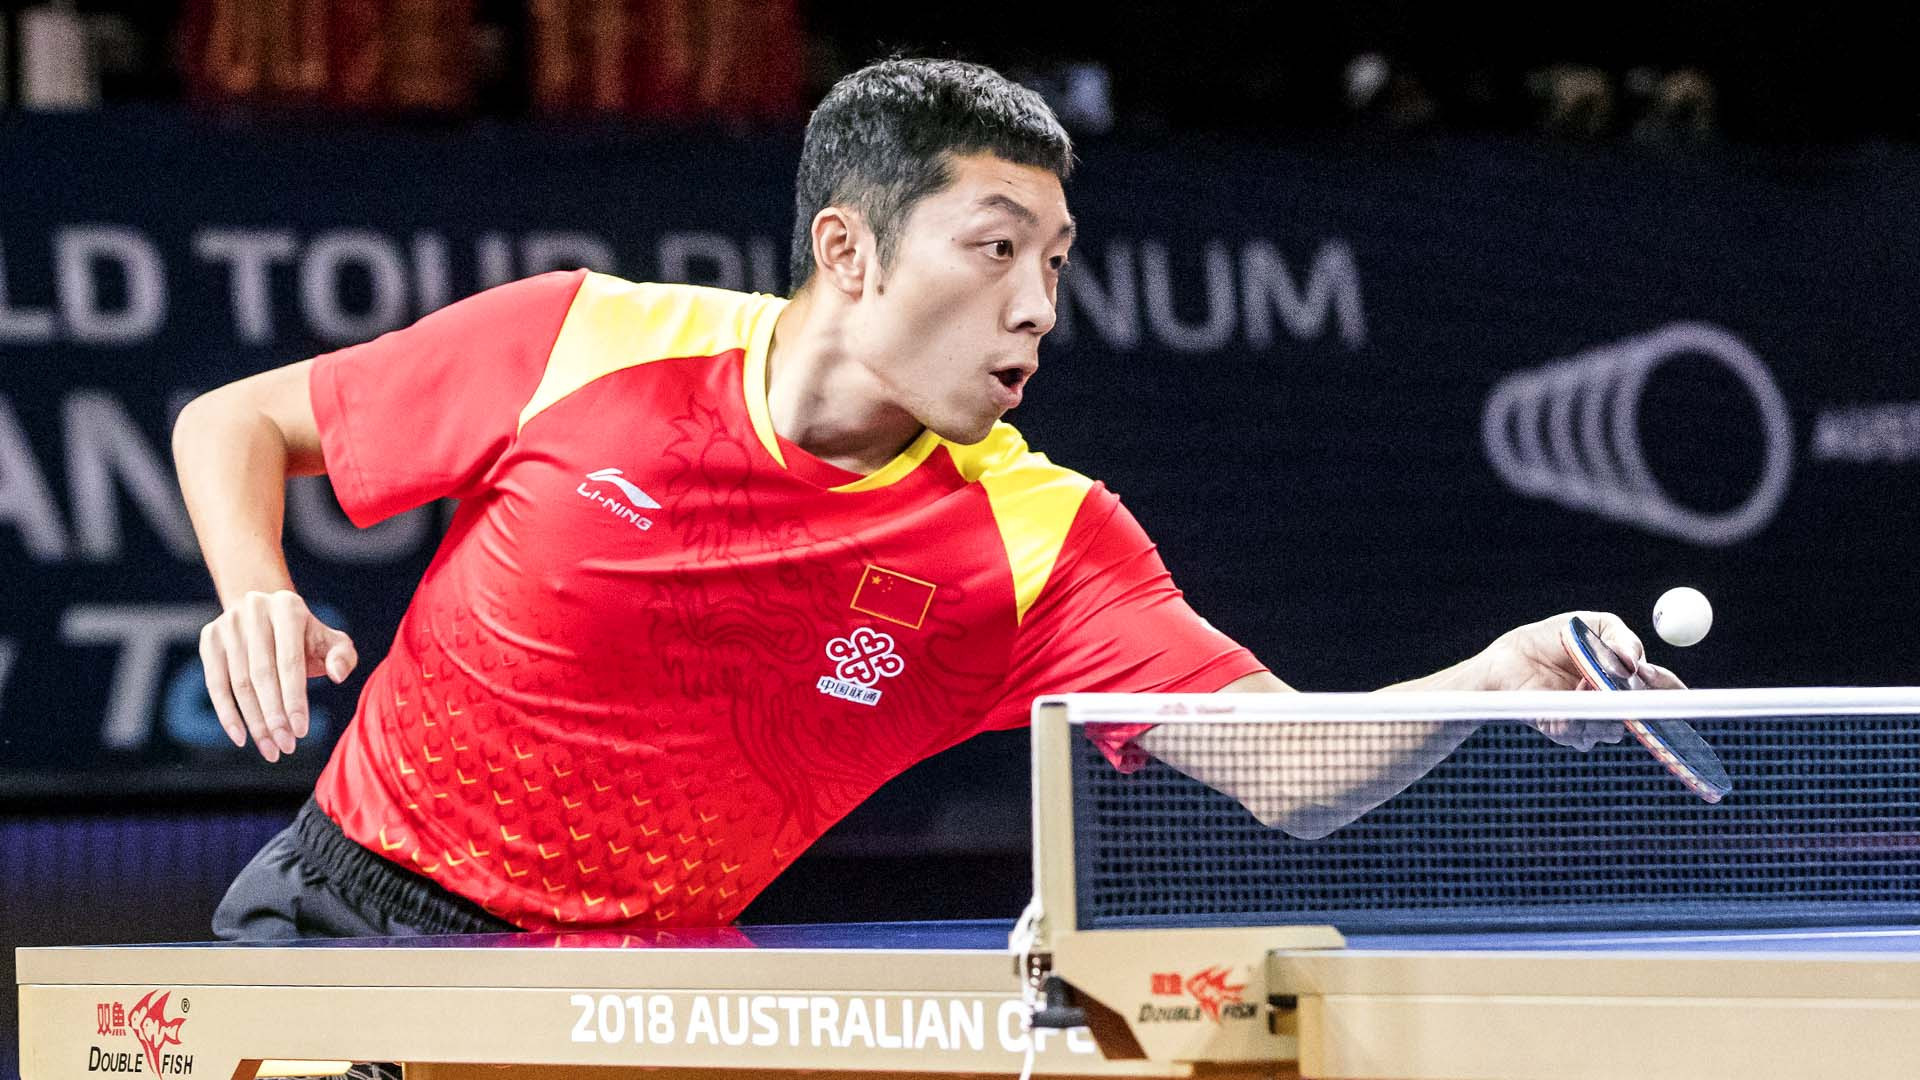 China's Xu Xin earned a morale-boosting victory in the men's final at the ITTF Australian Open in Geelong ©ITTF